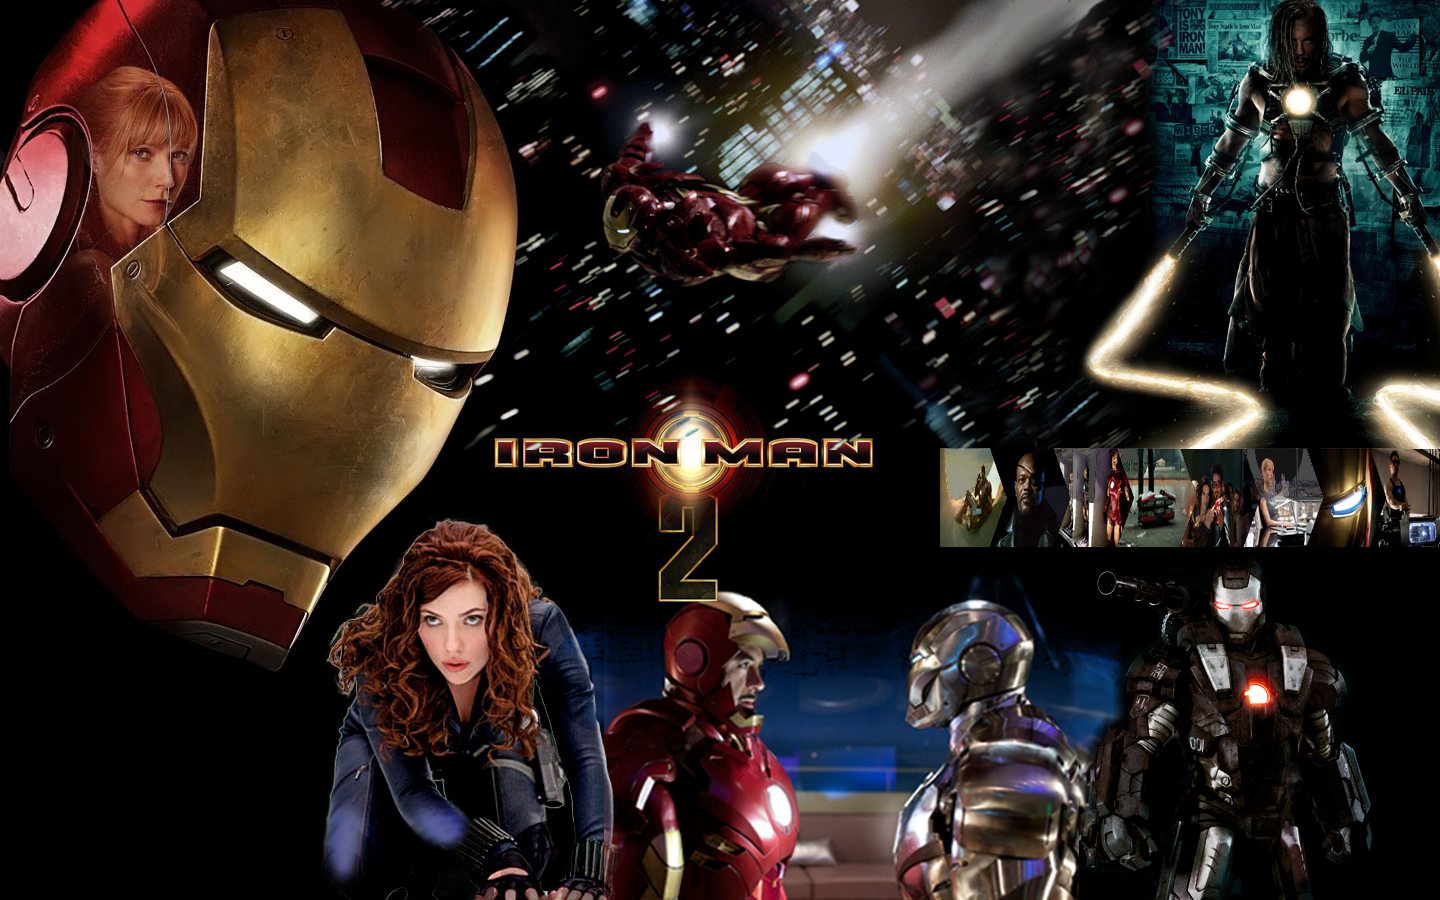 download iron man 2 movie